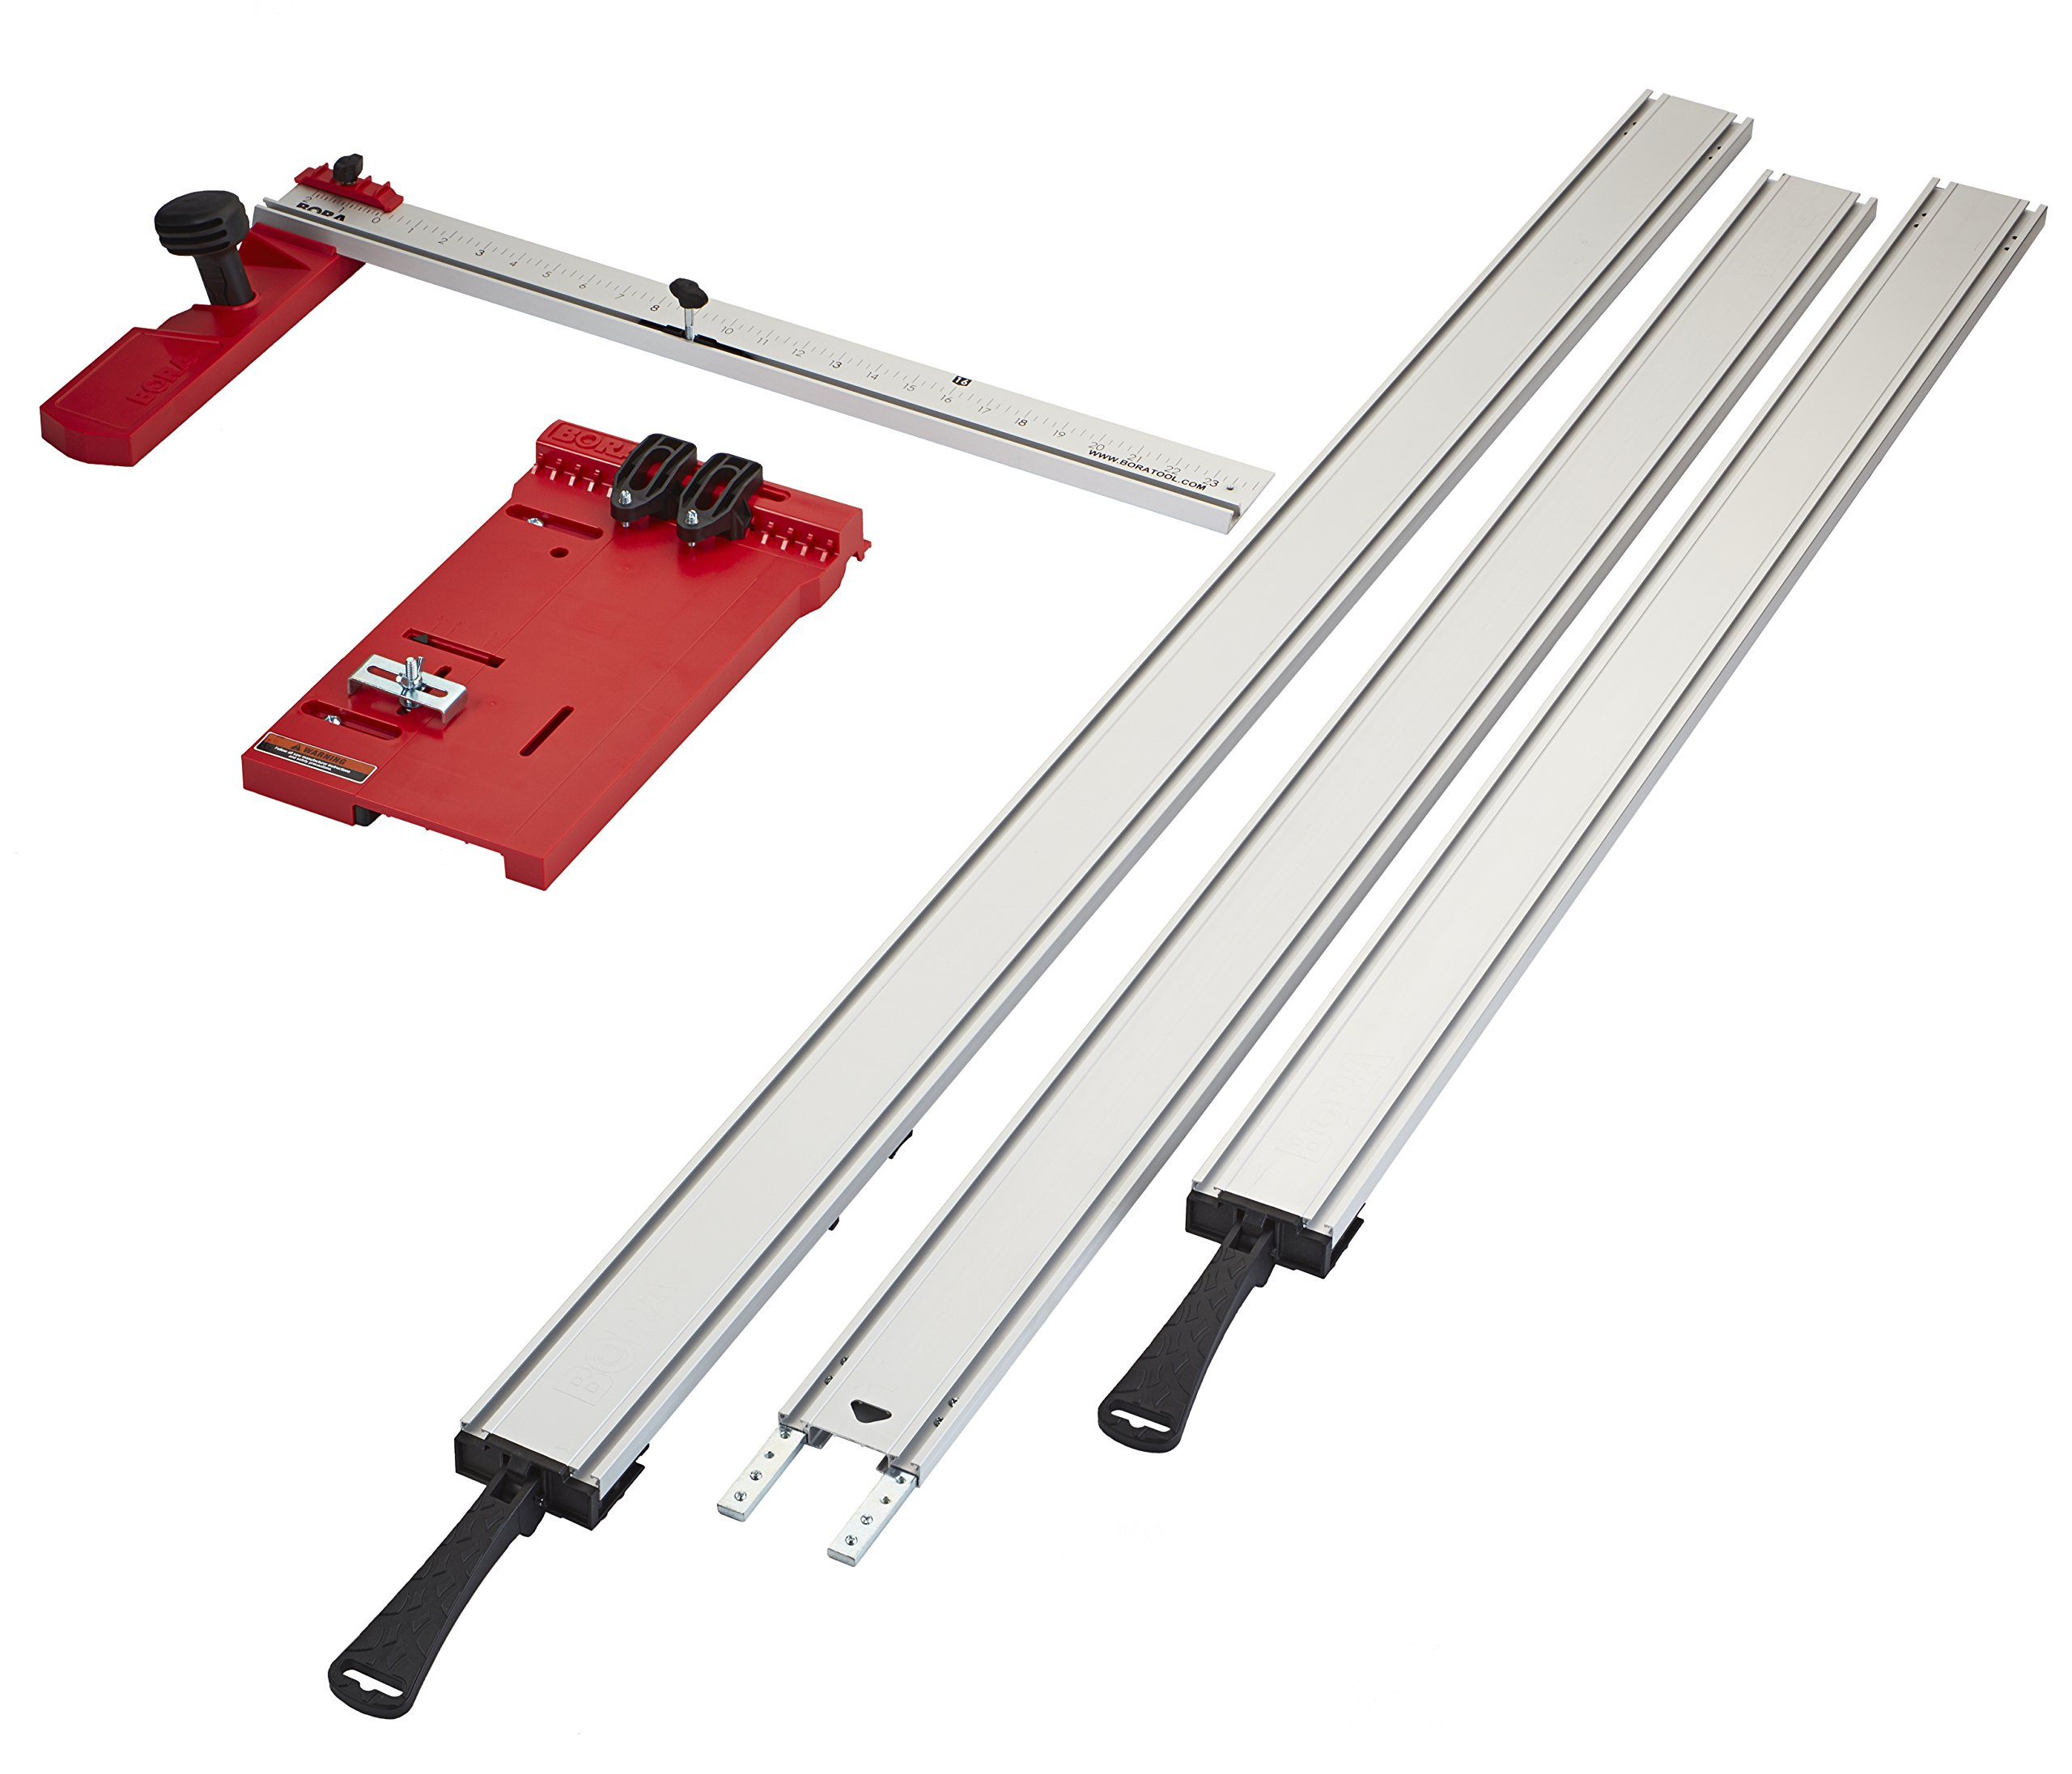 Bora 543500 50'' + 36'' Clamps + 50'' Extension + Saw Plate + Rip Handle WTX Clamping Straight Edge Saw Guide Set (5 Piece)